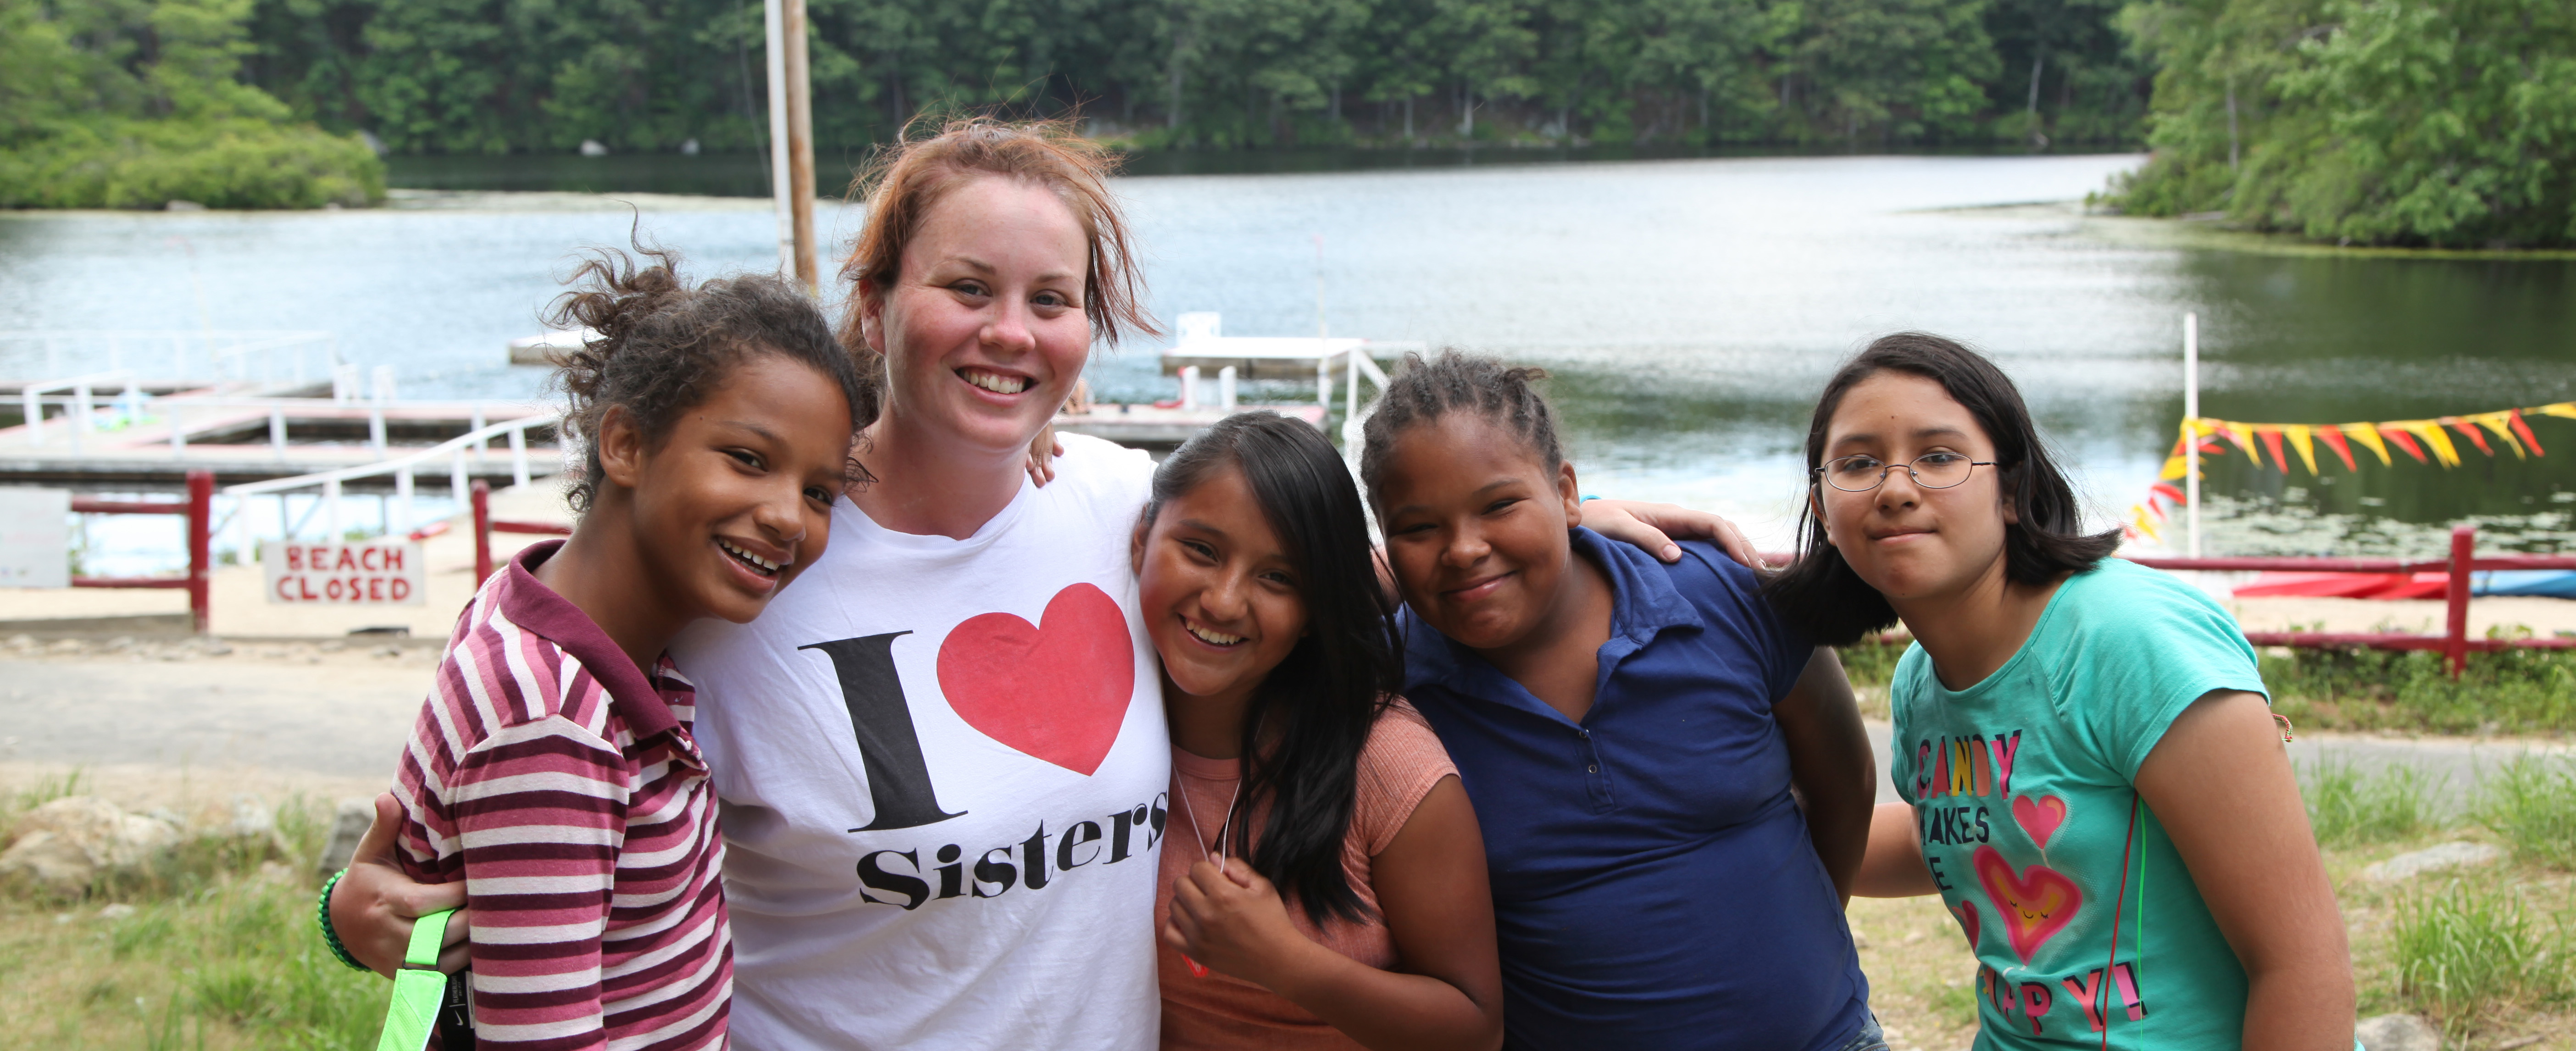 Female camp counselor smiling with a group of girls in front of the lake.